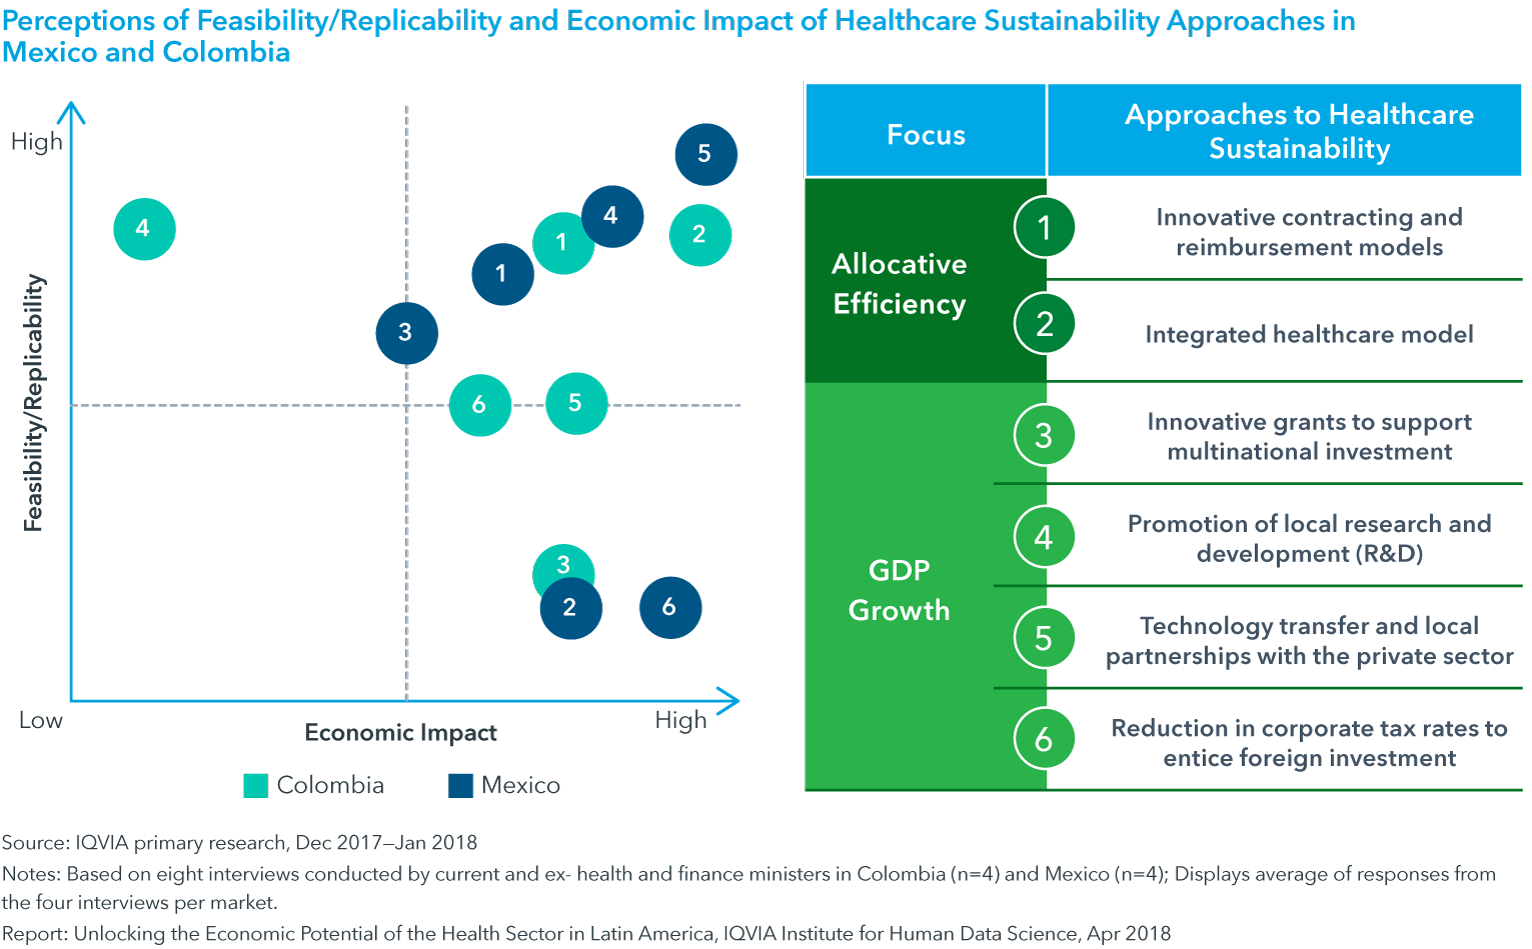 Chart 9: Perceptions of Feasibility/Replicability and Economic Impact of Healthcare Sustainability Approaches in Mexico and Colombia